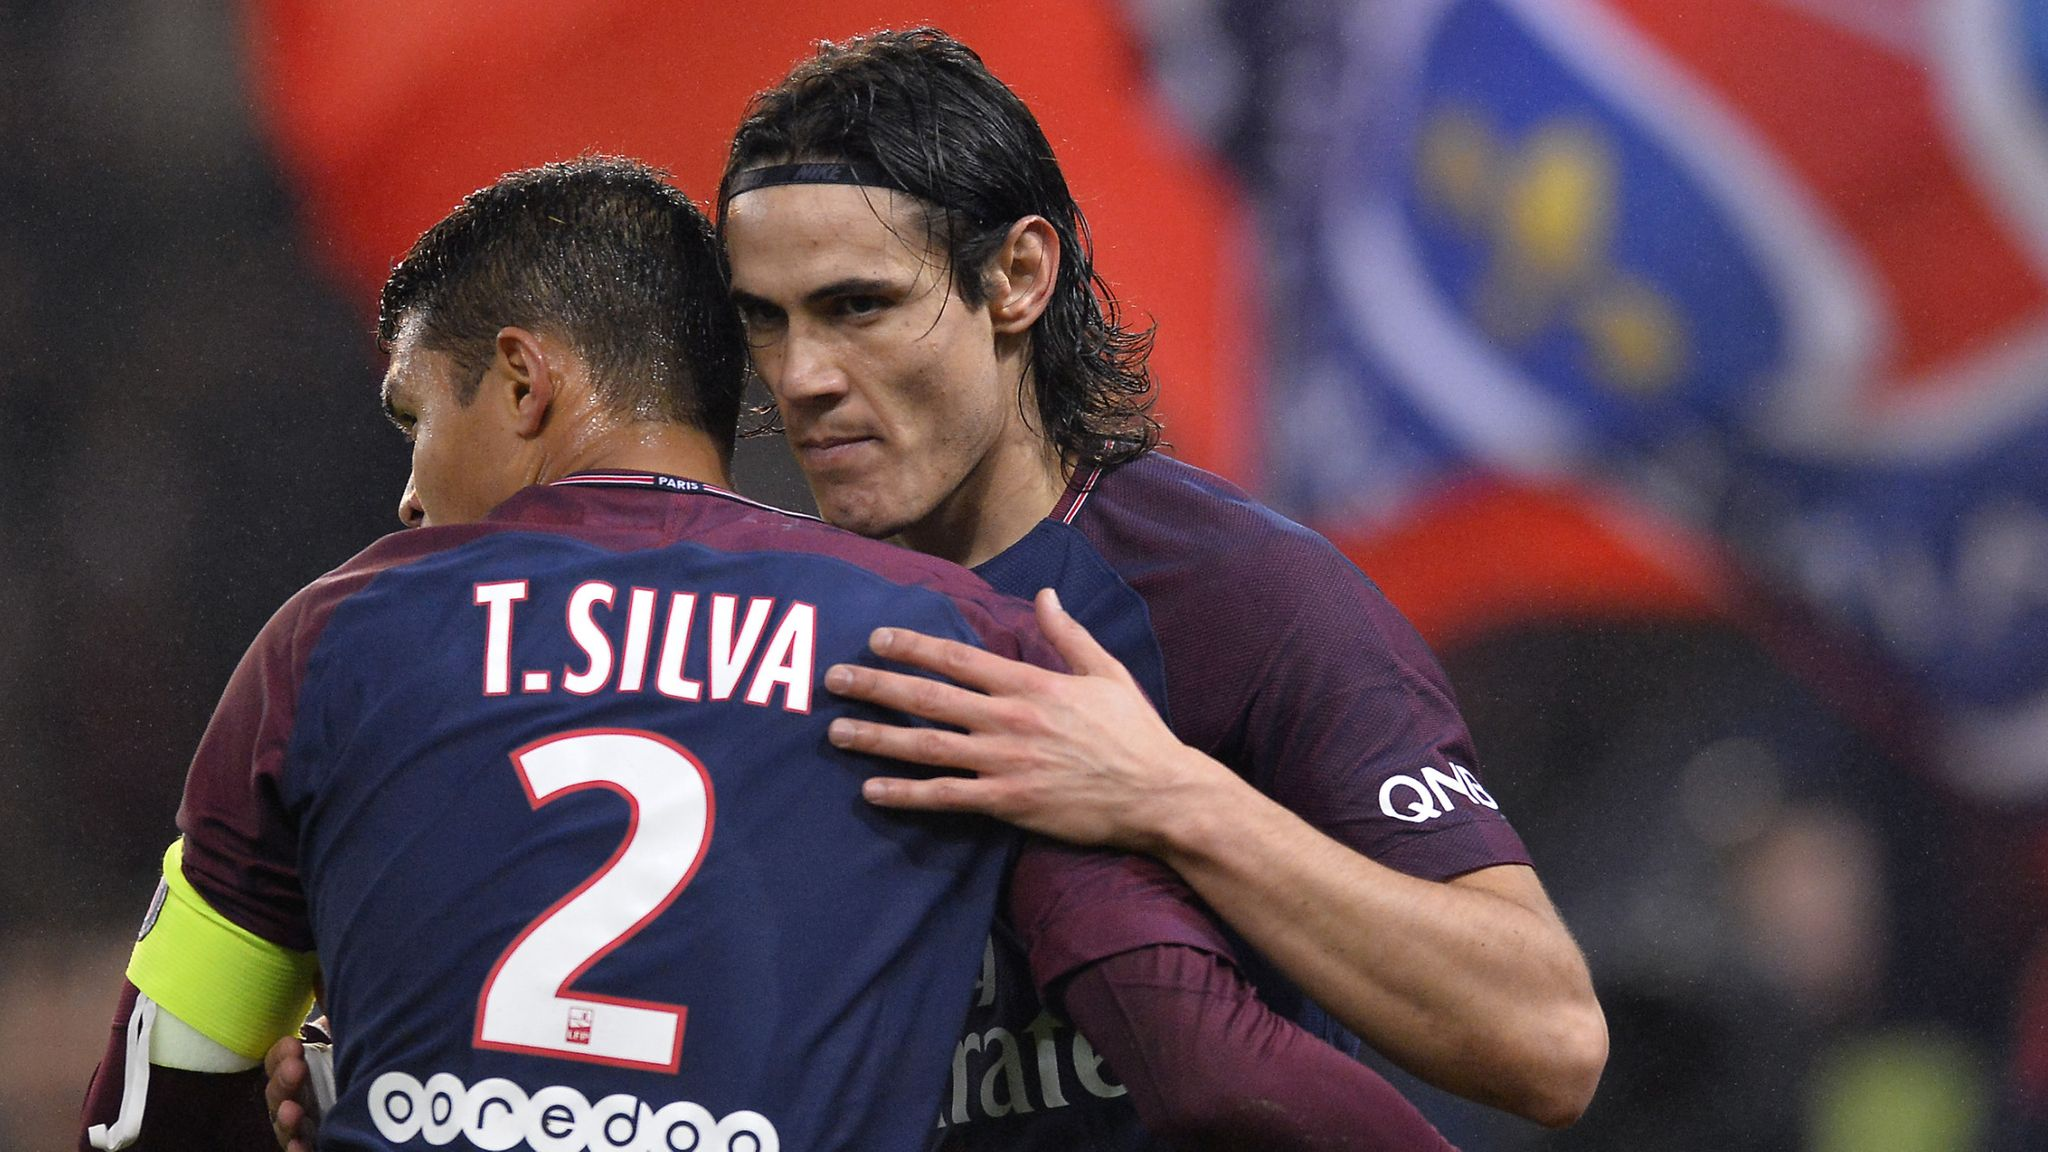 CAVANI TO CLASH WITH THIAGO IN HIS DEBUT MANCHESTER UNITED MATCH